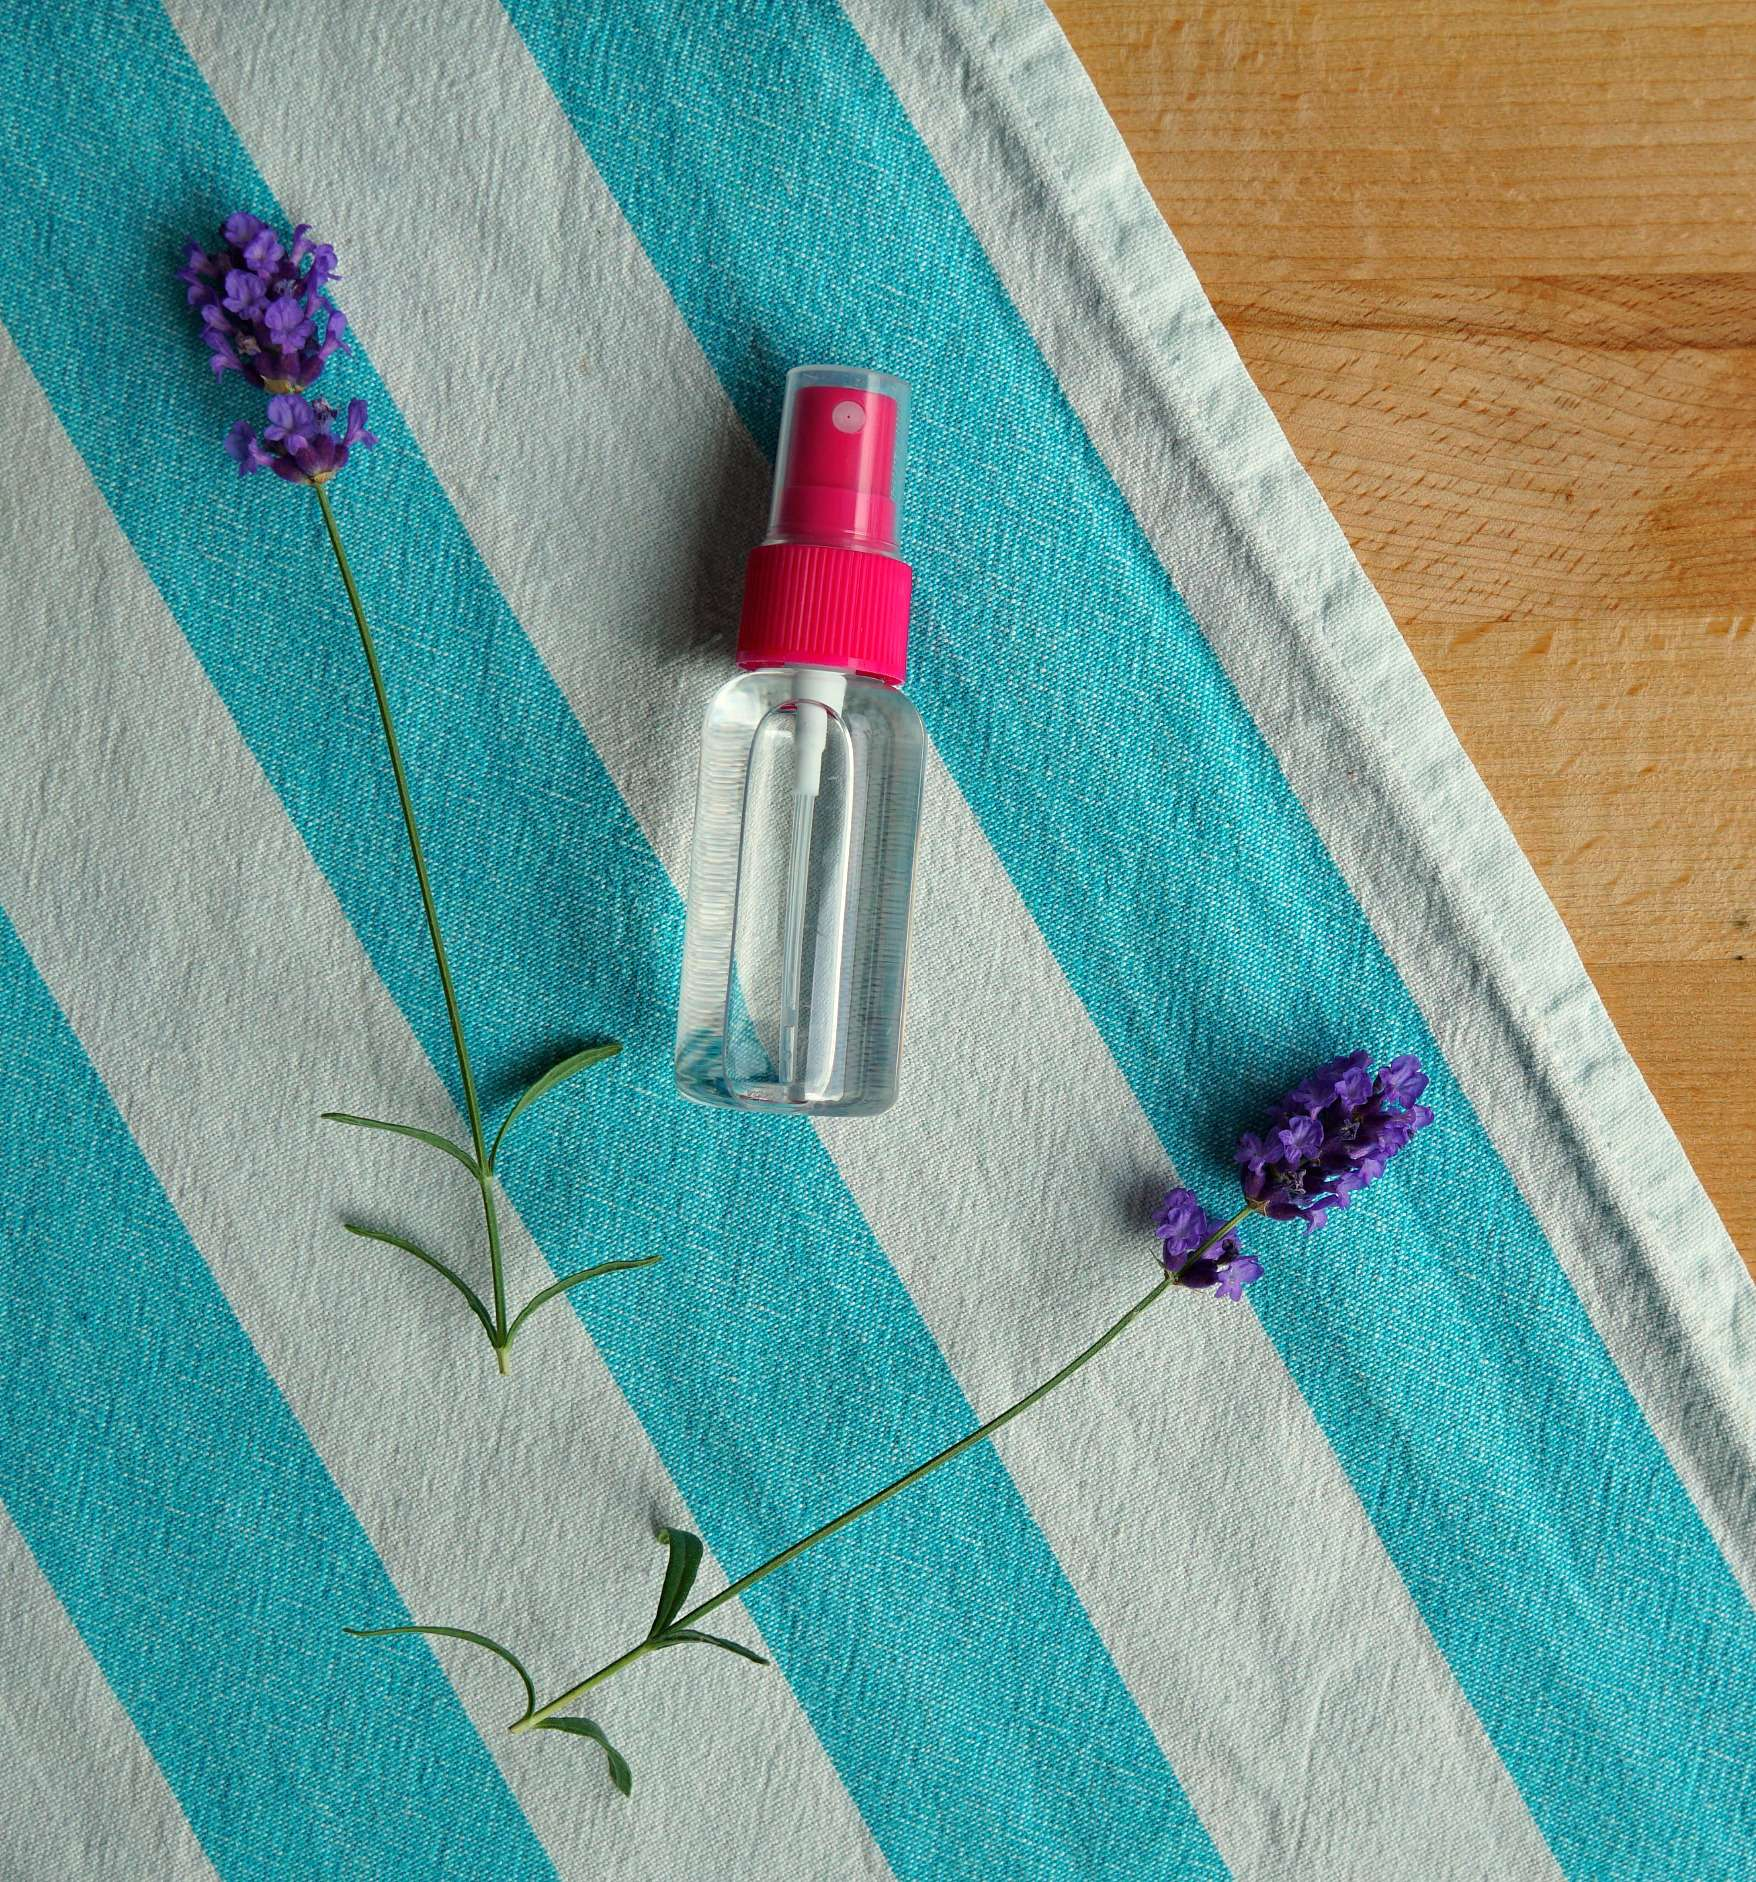 DIY Lavender Pillow Mist How To make your own anti mosquito and good night sleep spray | DIY by The Makeup Dummy